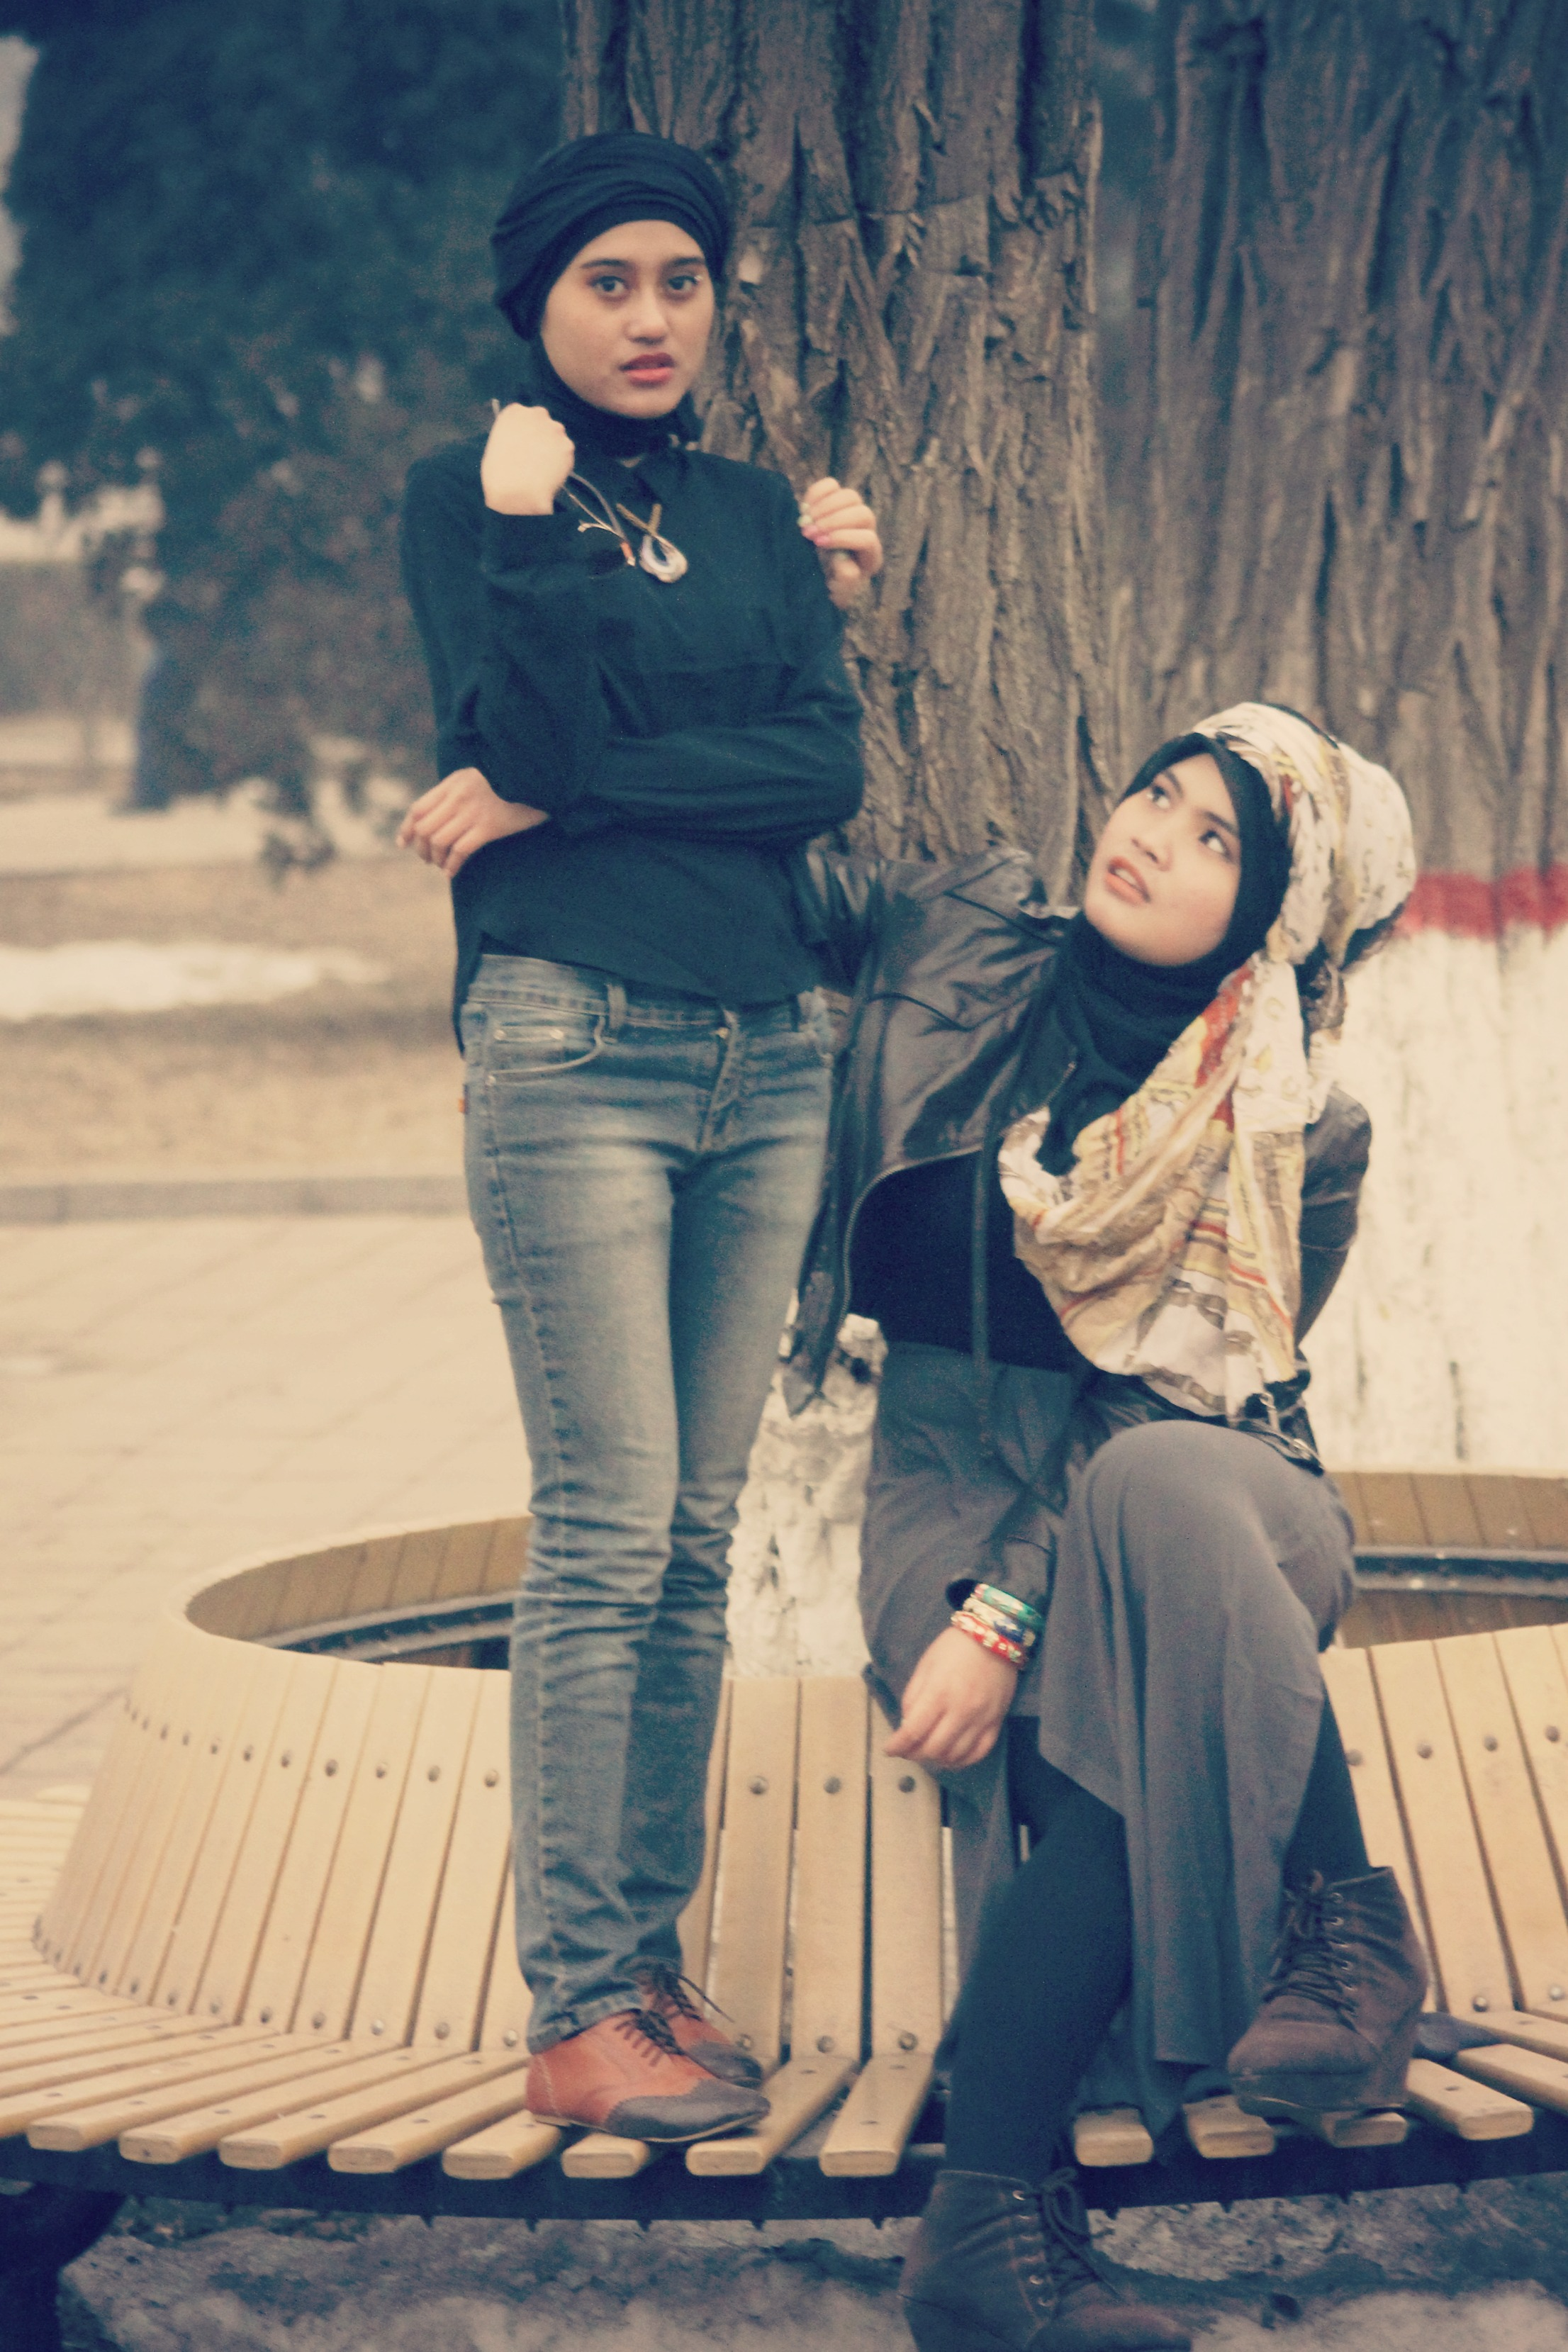 Hijab-Toujin • in winter get style ala summer #vanessa